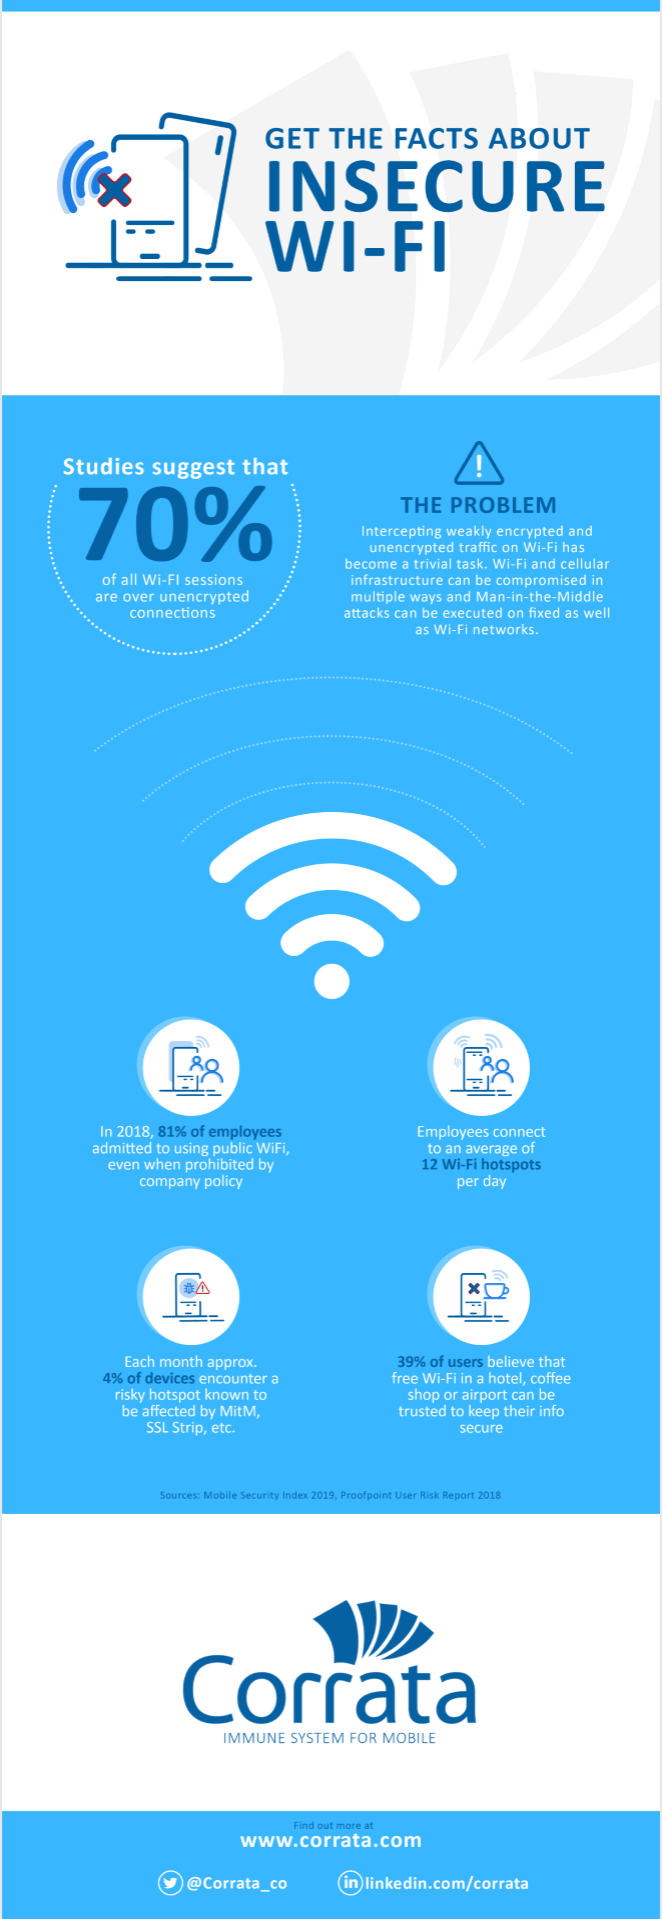 Get the facts about insecure Wi-Fi